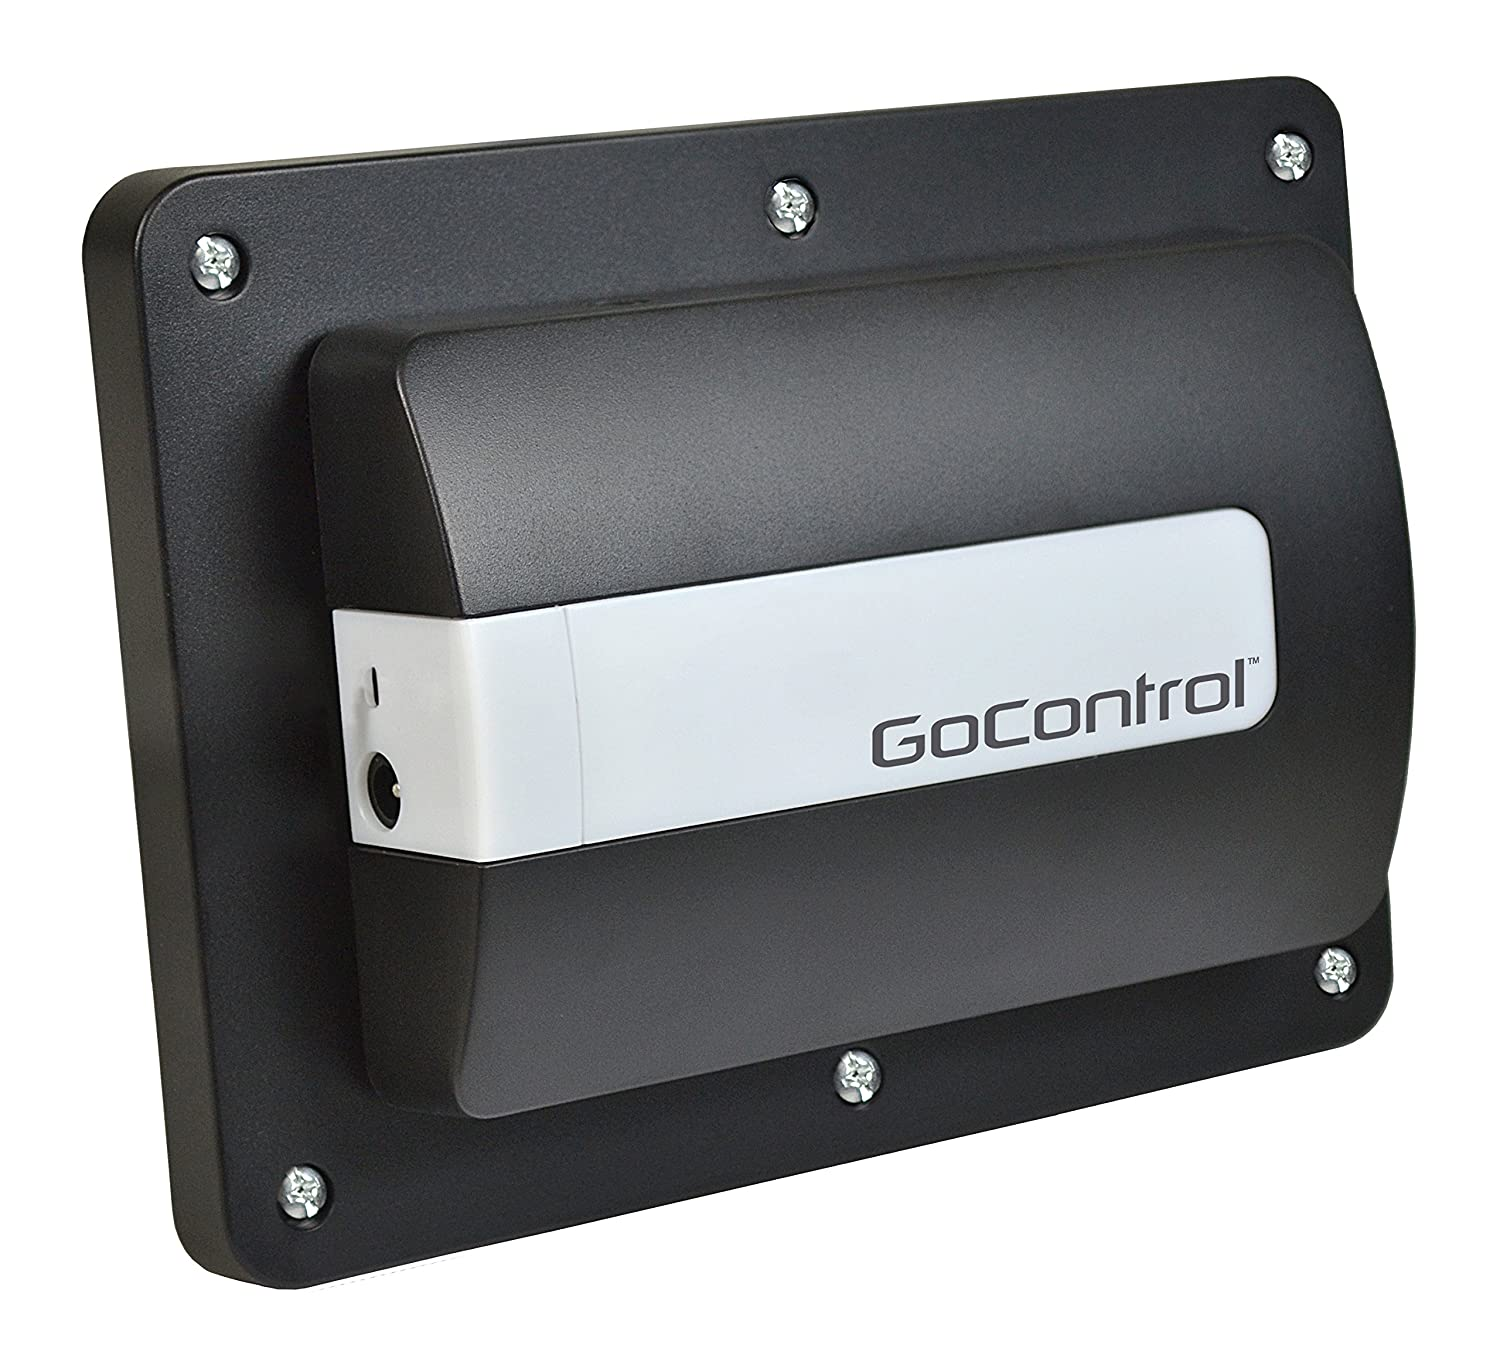 91o5McEXBlL._SL1500_ gocontrol linear gd00z 4 z wave garage door opener remote Garage Door Openers at gsmx.co